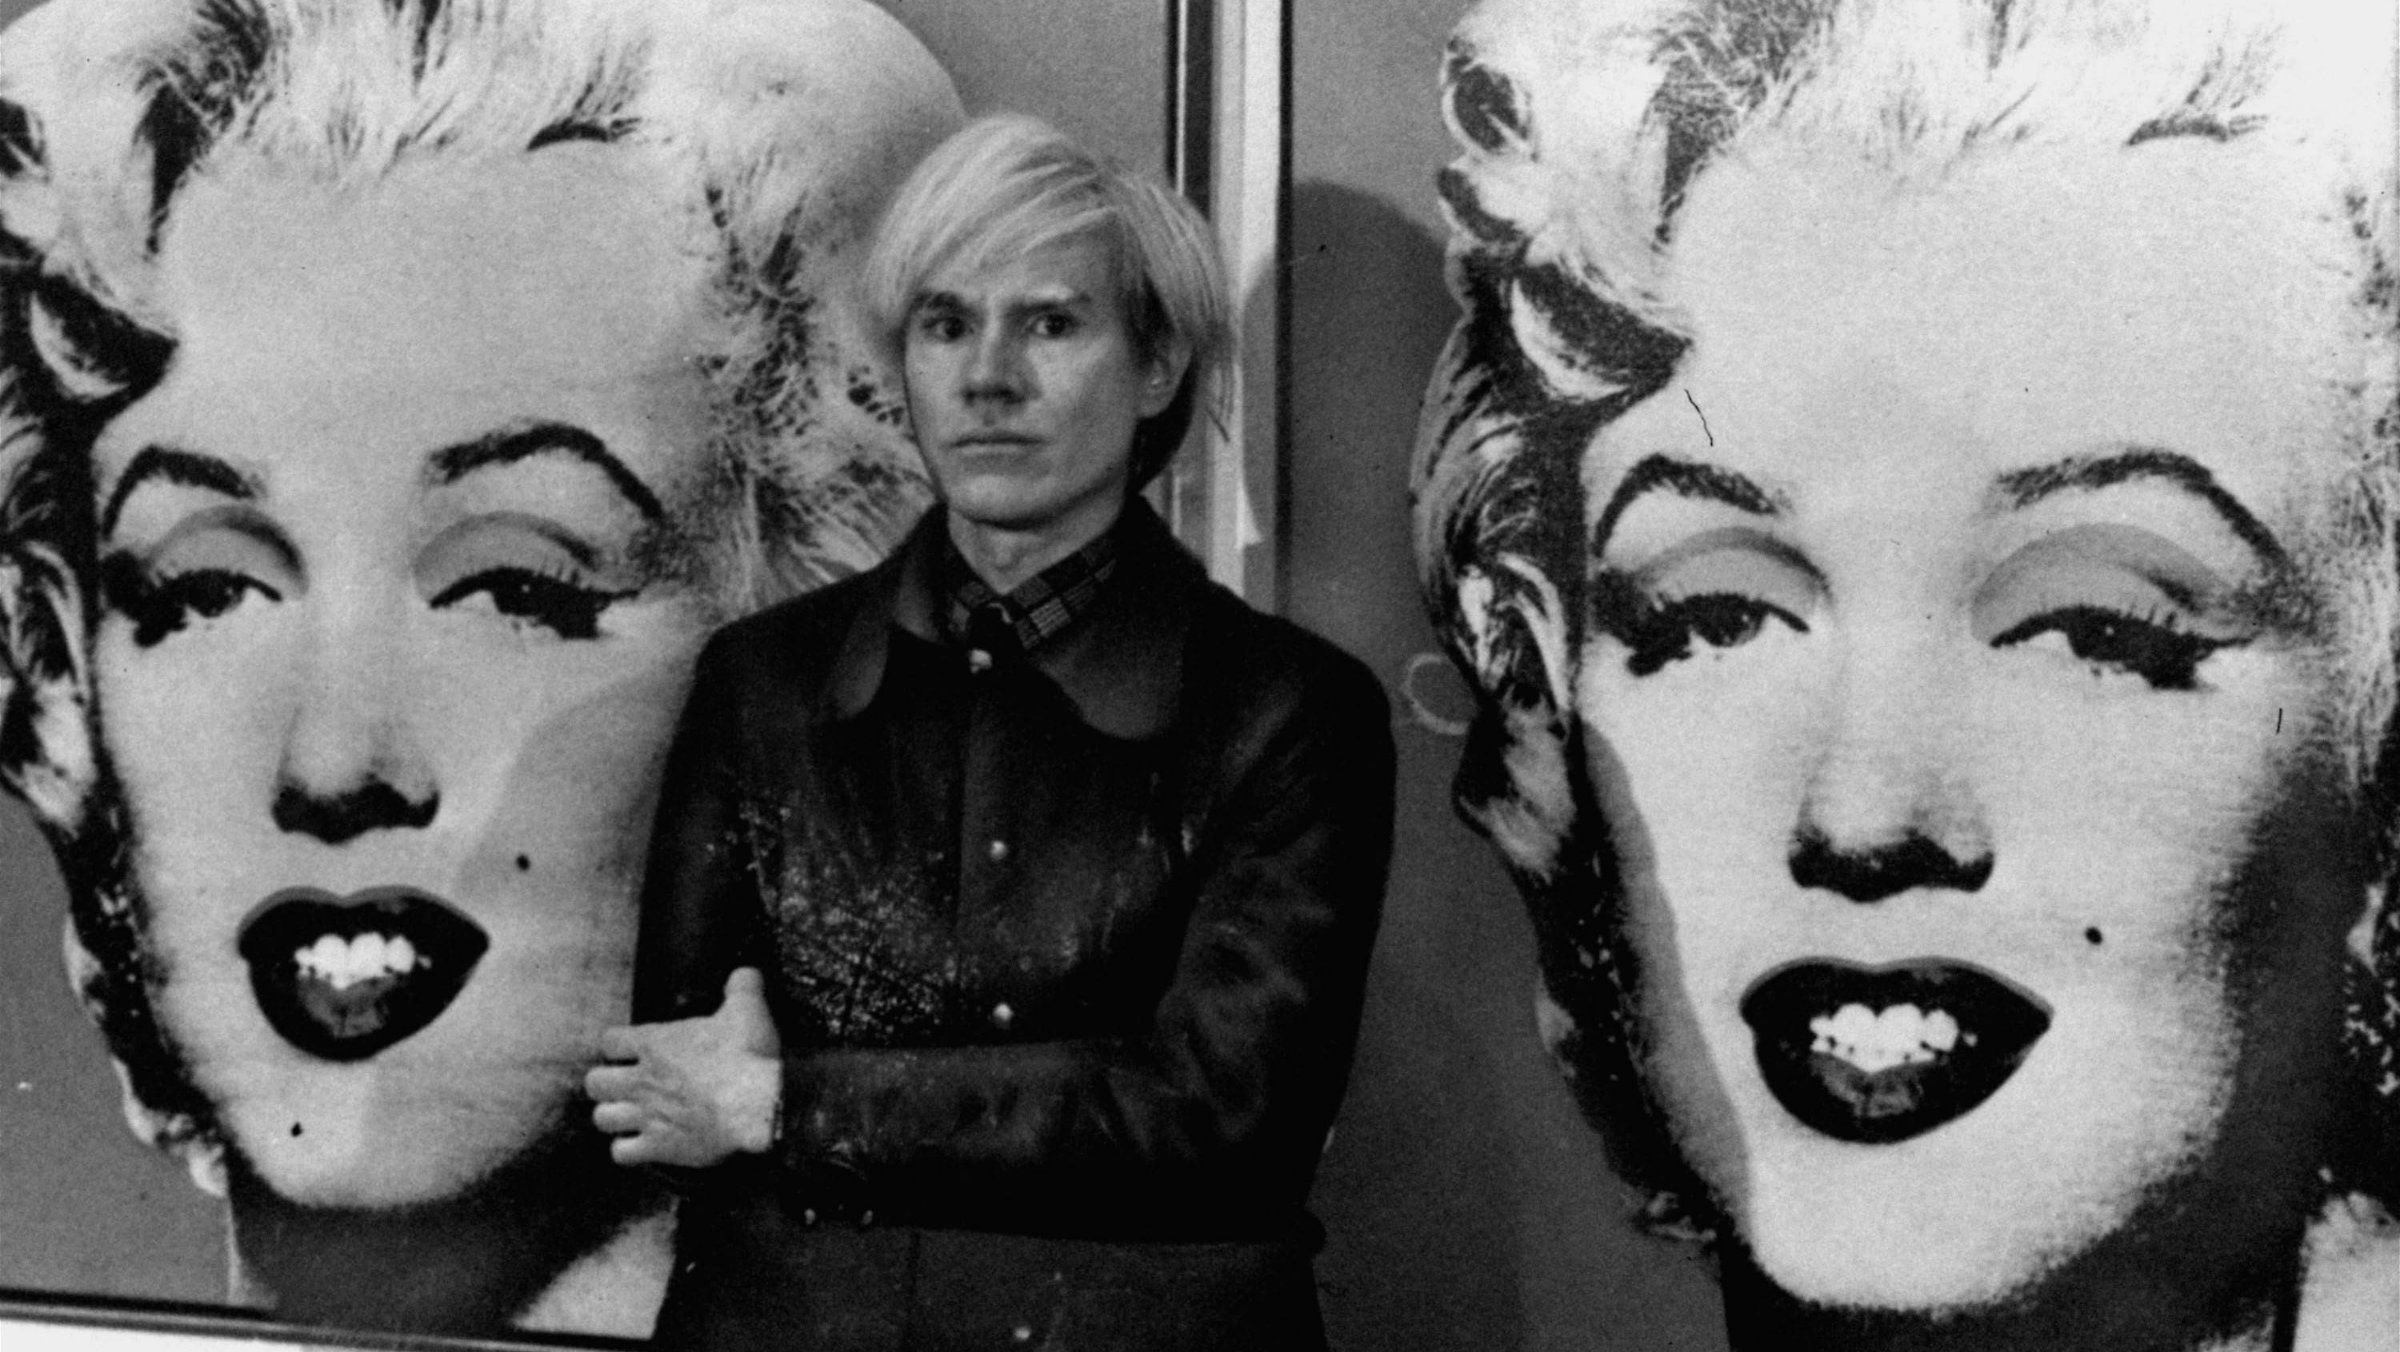 art market with blockchain andy warhol